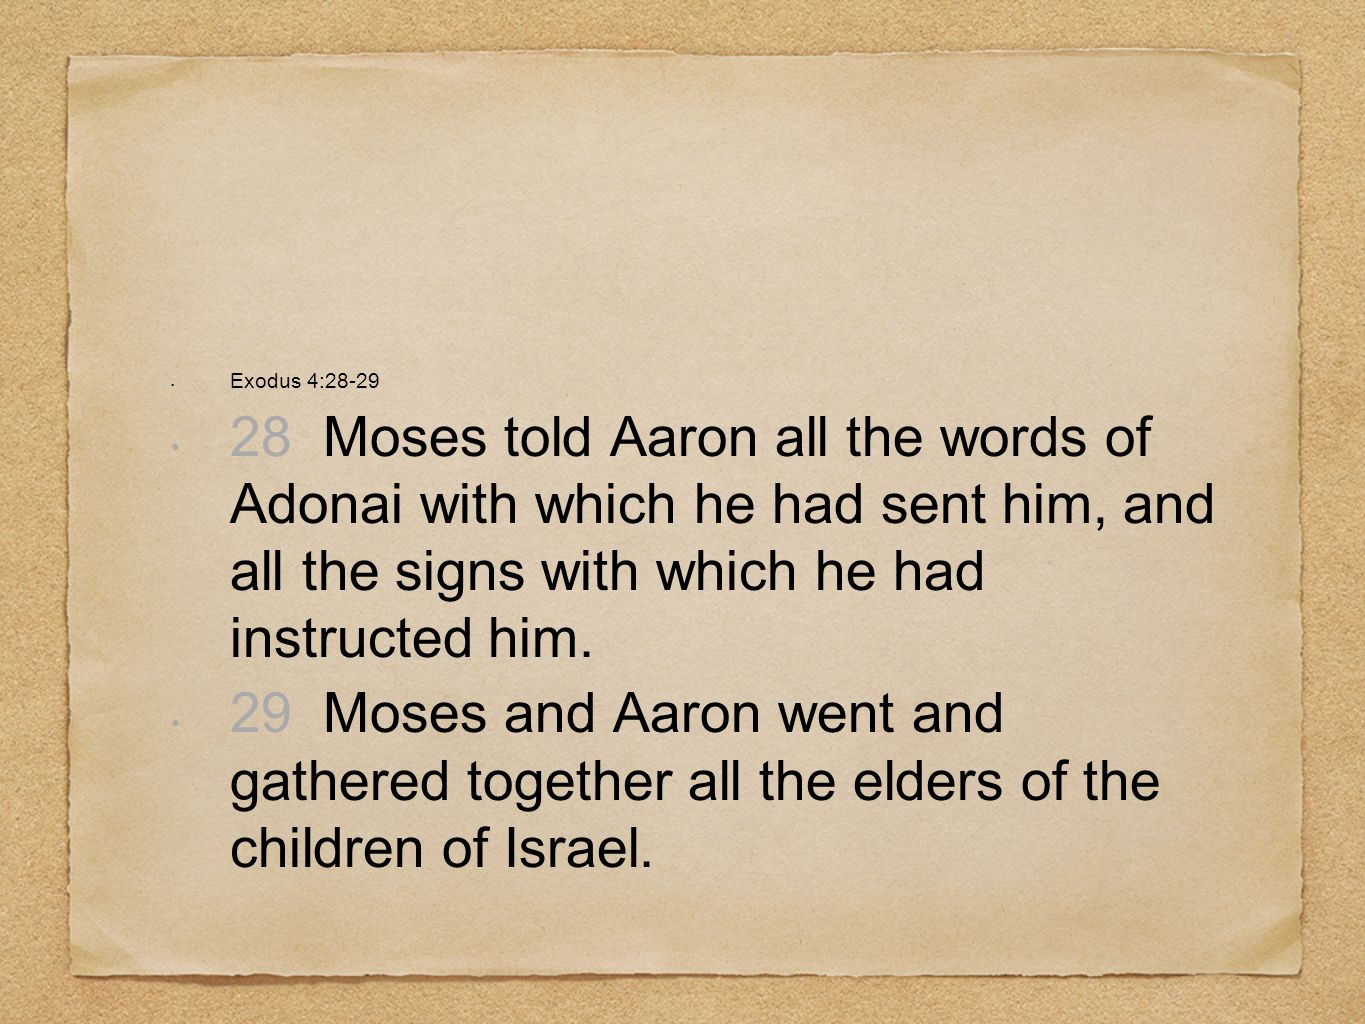 Exodus 4: Moses told Aaron all the words of Adonai with which he had sent him, and all the signs with which he had instructed him.